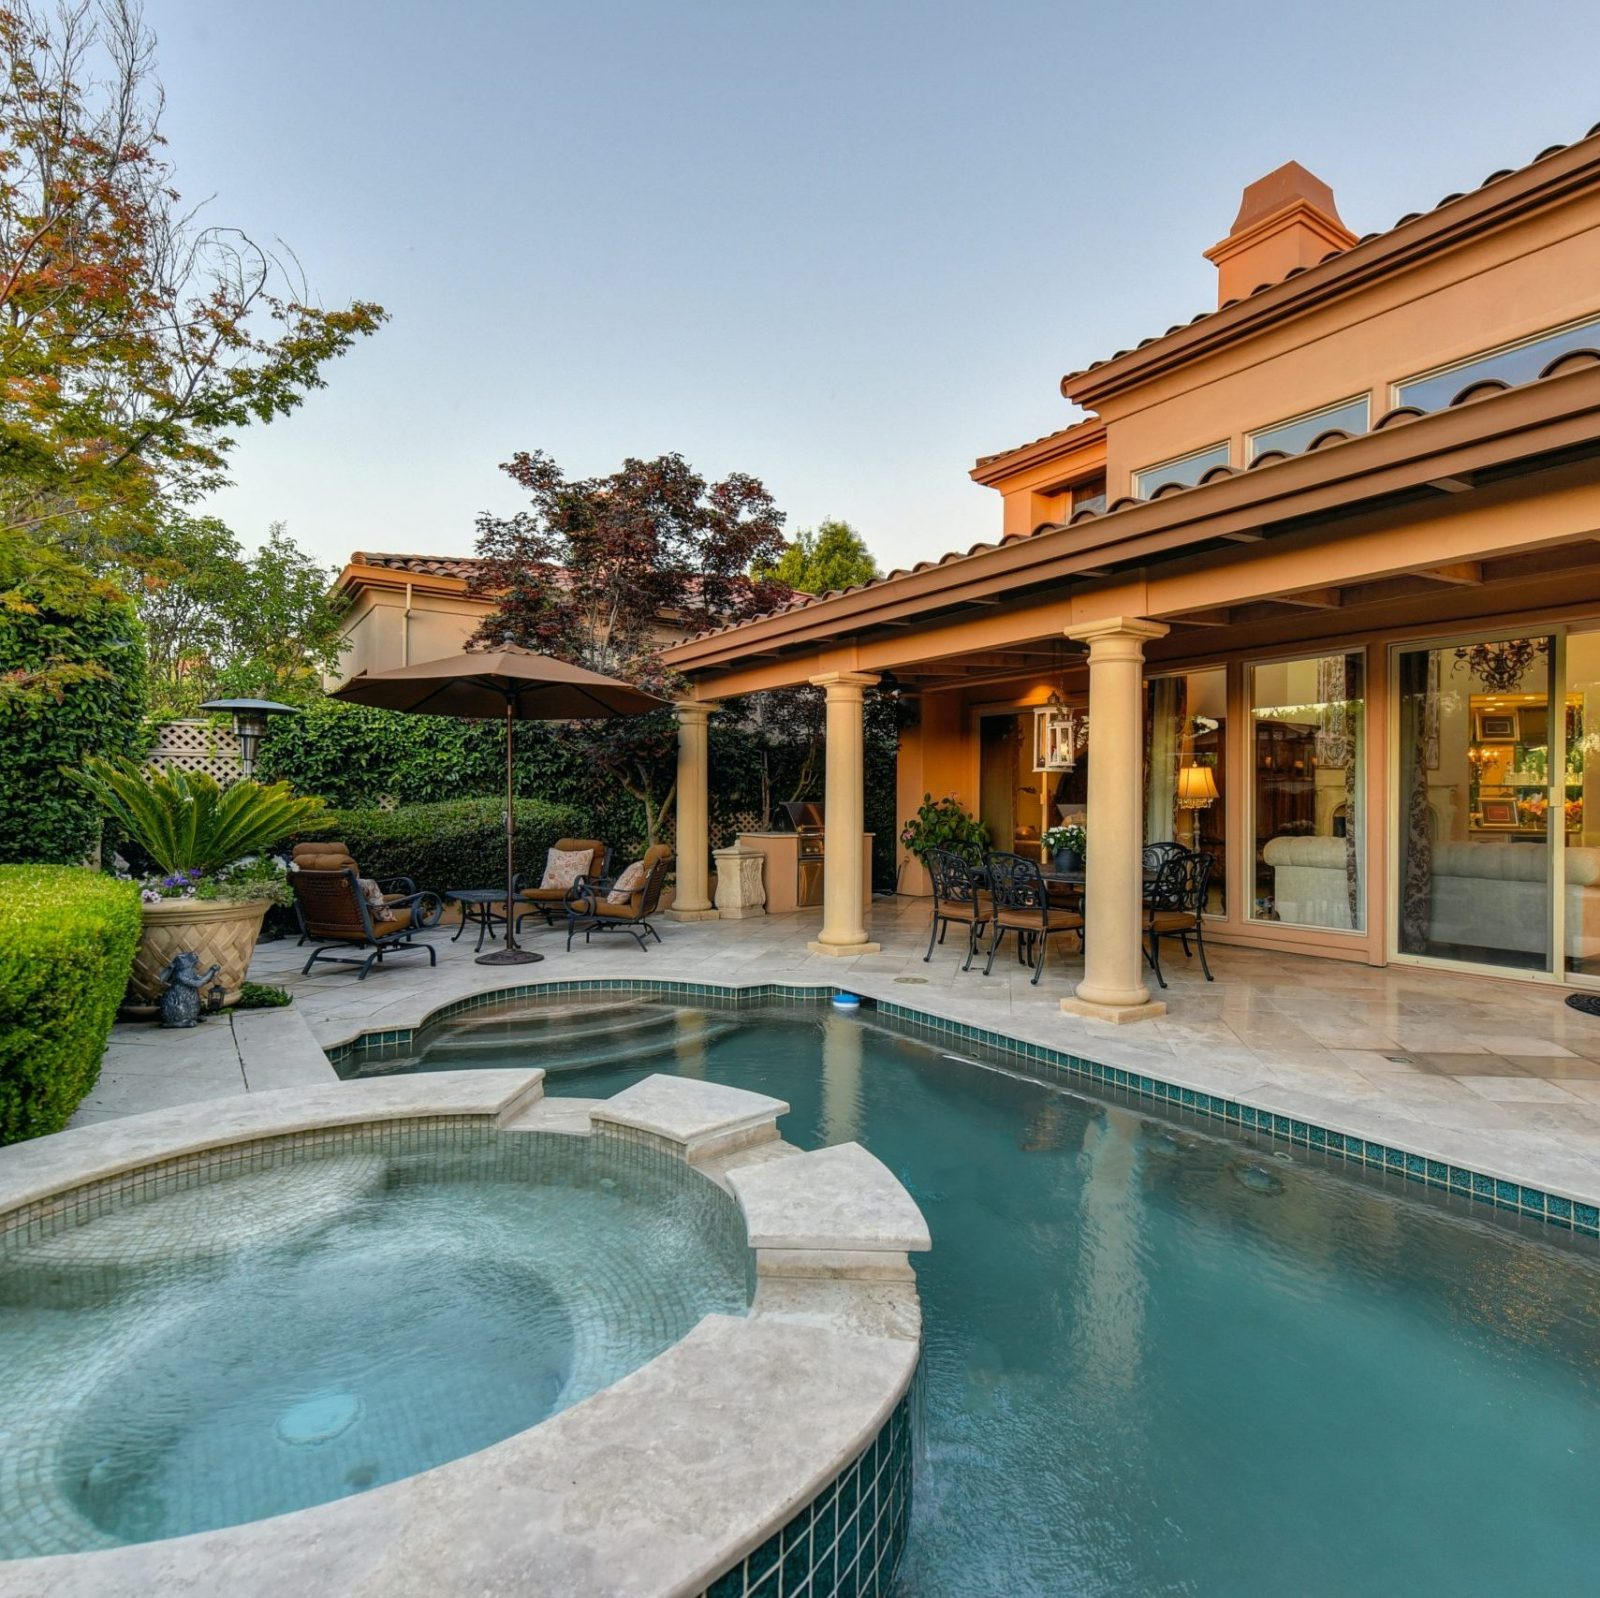 A home with a backyard pool and hot tub spa that is clean, updated, and well maintained.